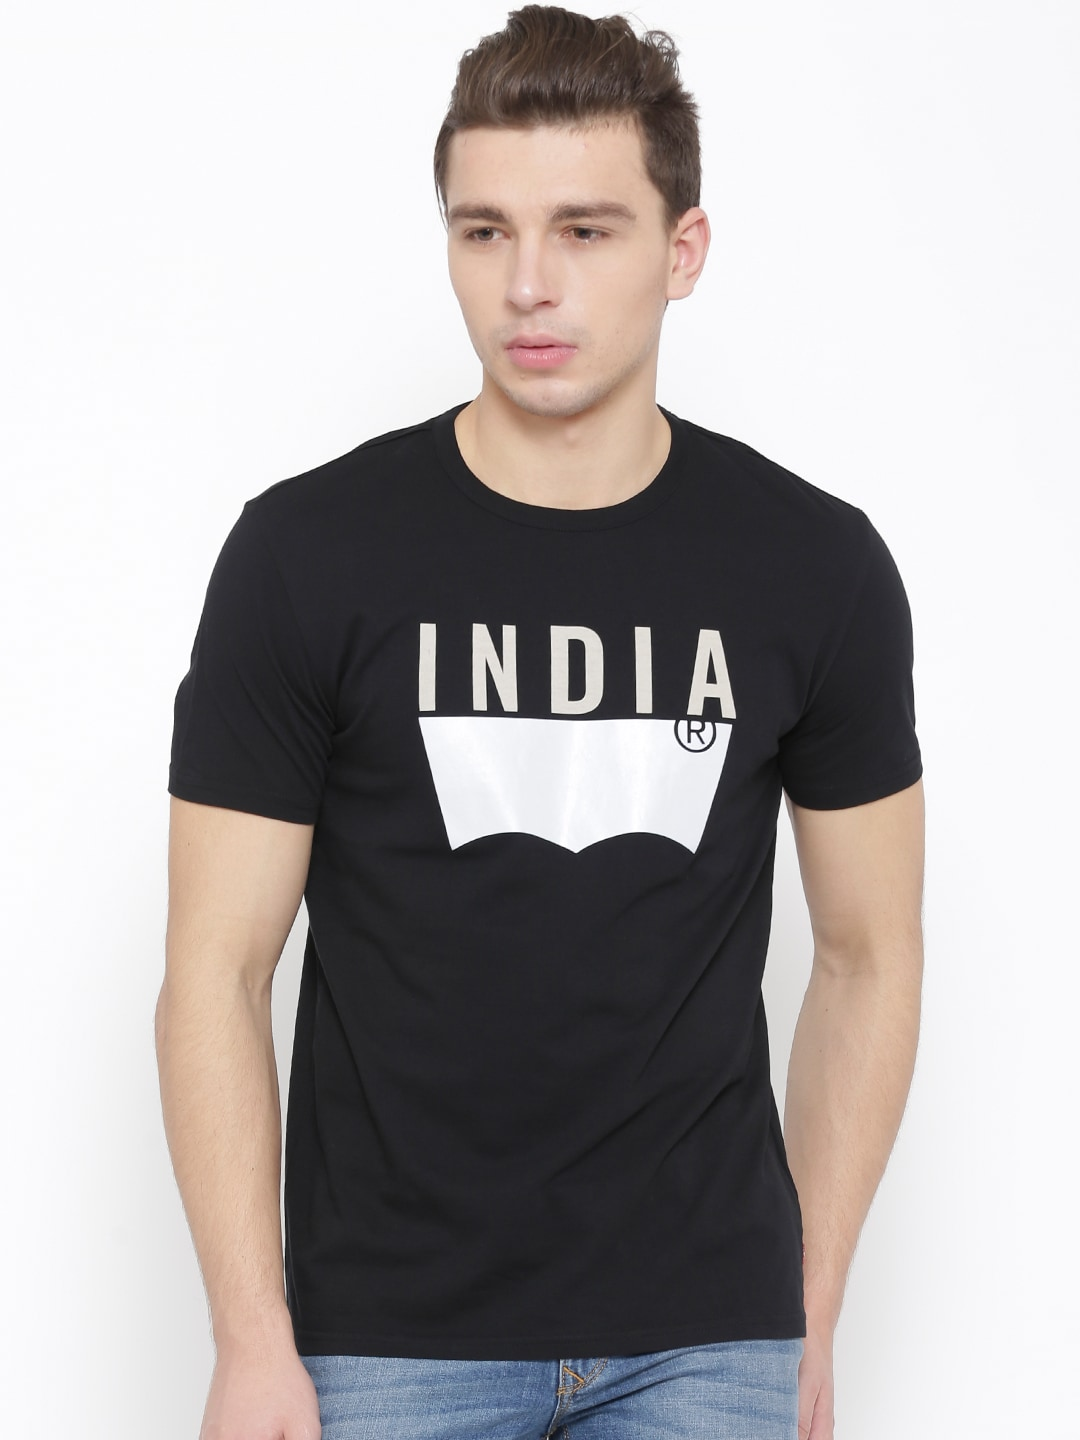 289d6822789 Levis 16961-0162 Black Graphic Print T Shirt - Best Price in India ...